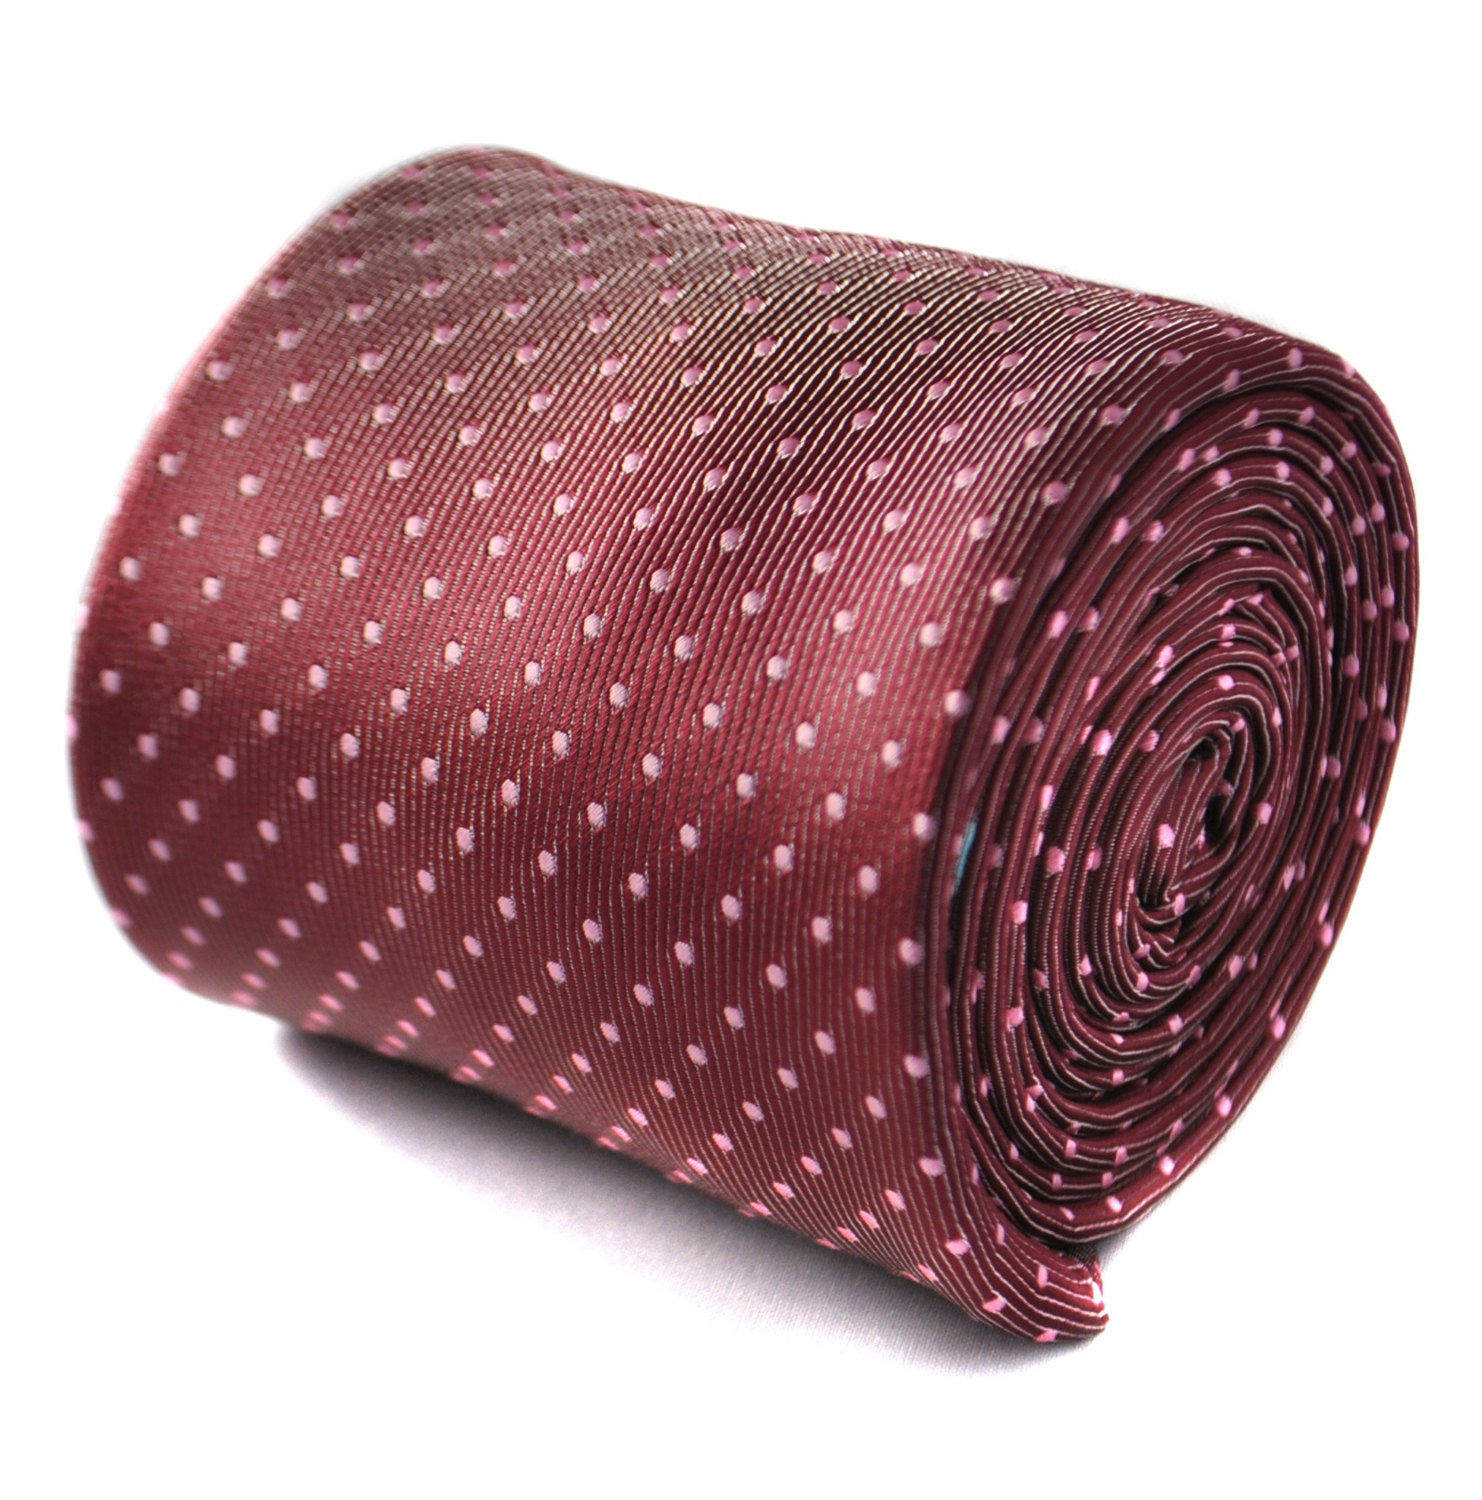 maroon red and white pin spot tie with floral design to the rear by Frederick Th